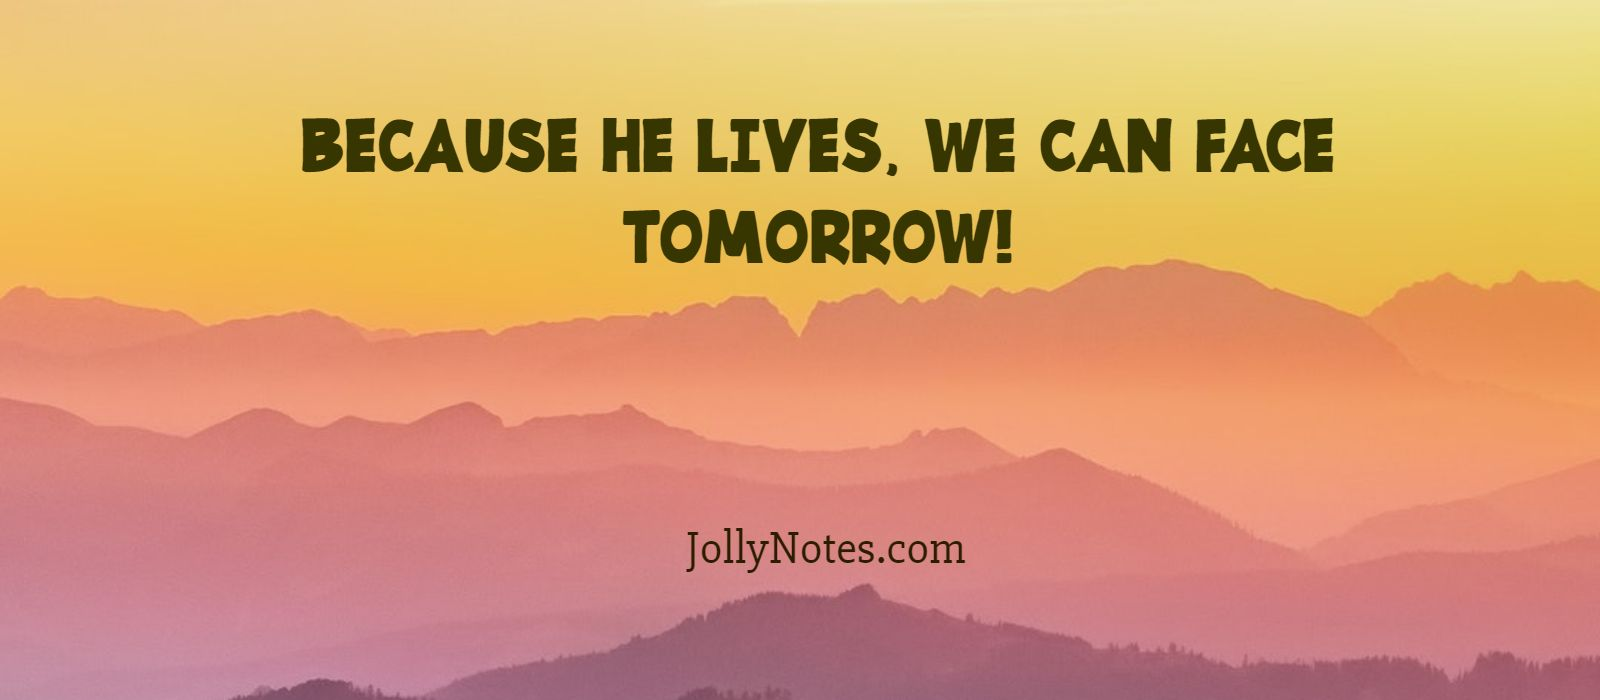 Because He Lives, We Can Face Tomorrow!